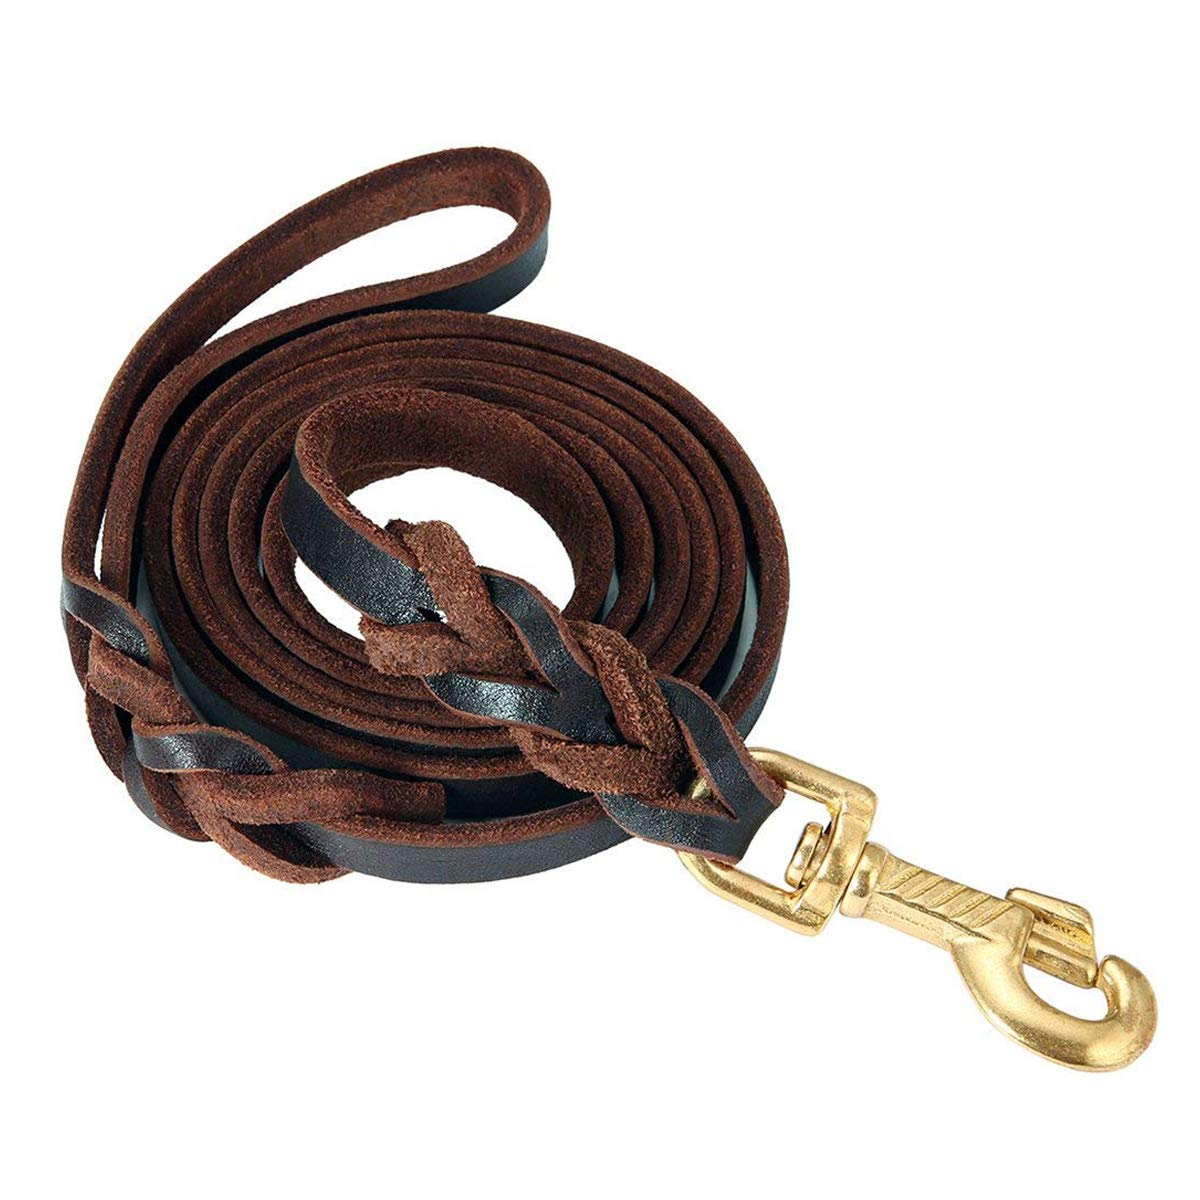 Leather Dog Leash 5.2 Ft Leather Dog Training Leash Pet Braided Dog Leash for Large Medium Leads Rope Dogs Walking&Training (0.7 Inch,Brown)